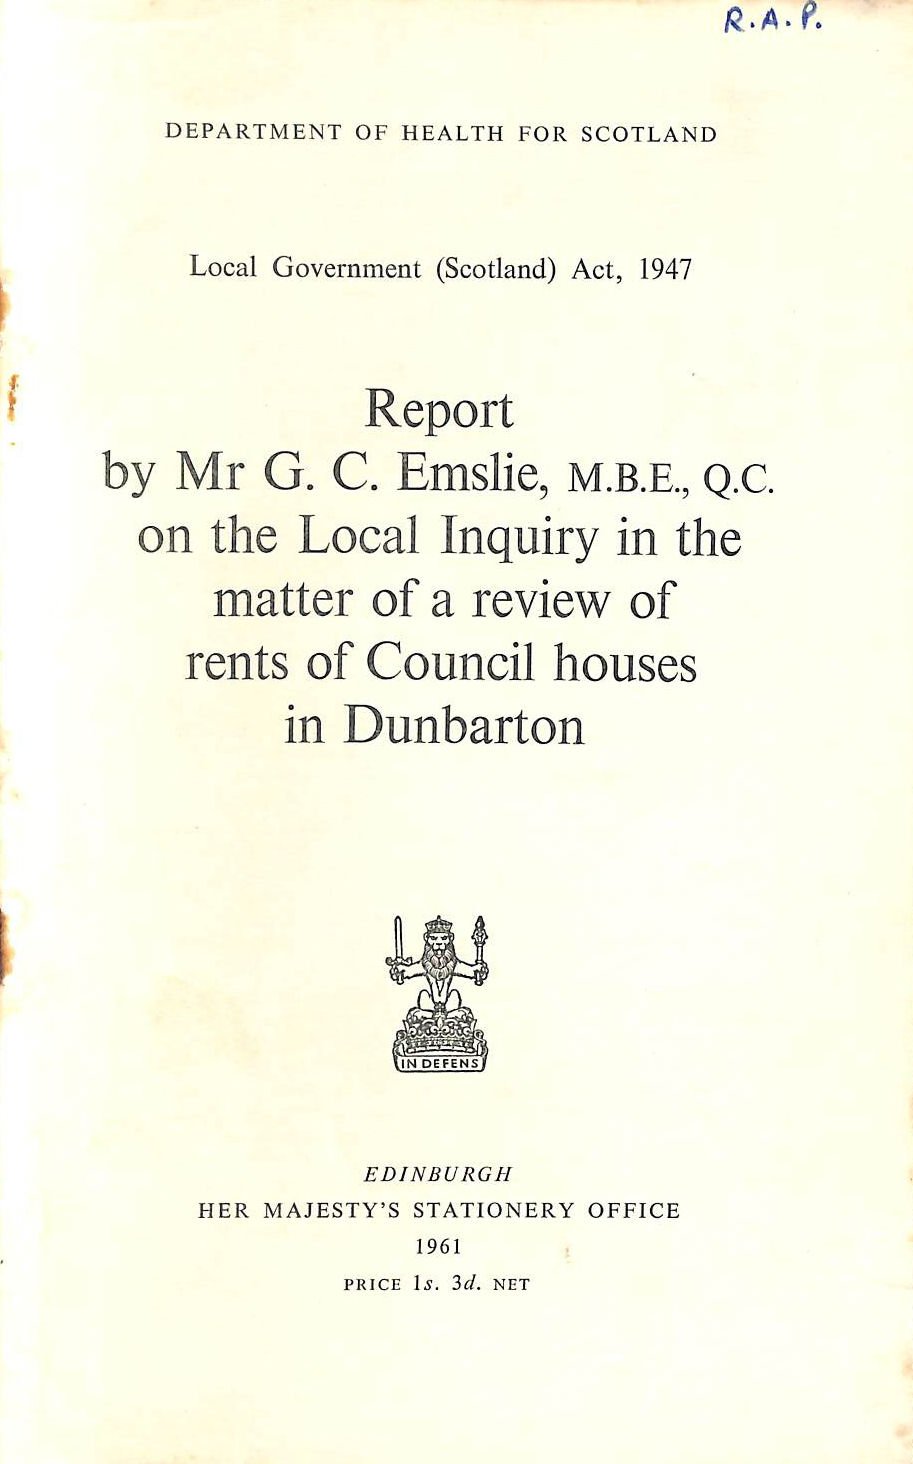 Image for Report by Mr G. C. Emslie, M>B>E., Q>C. on the Local Inquiry in the matter of a review of rensts of Council houses in Dunbarton